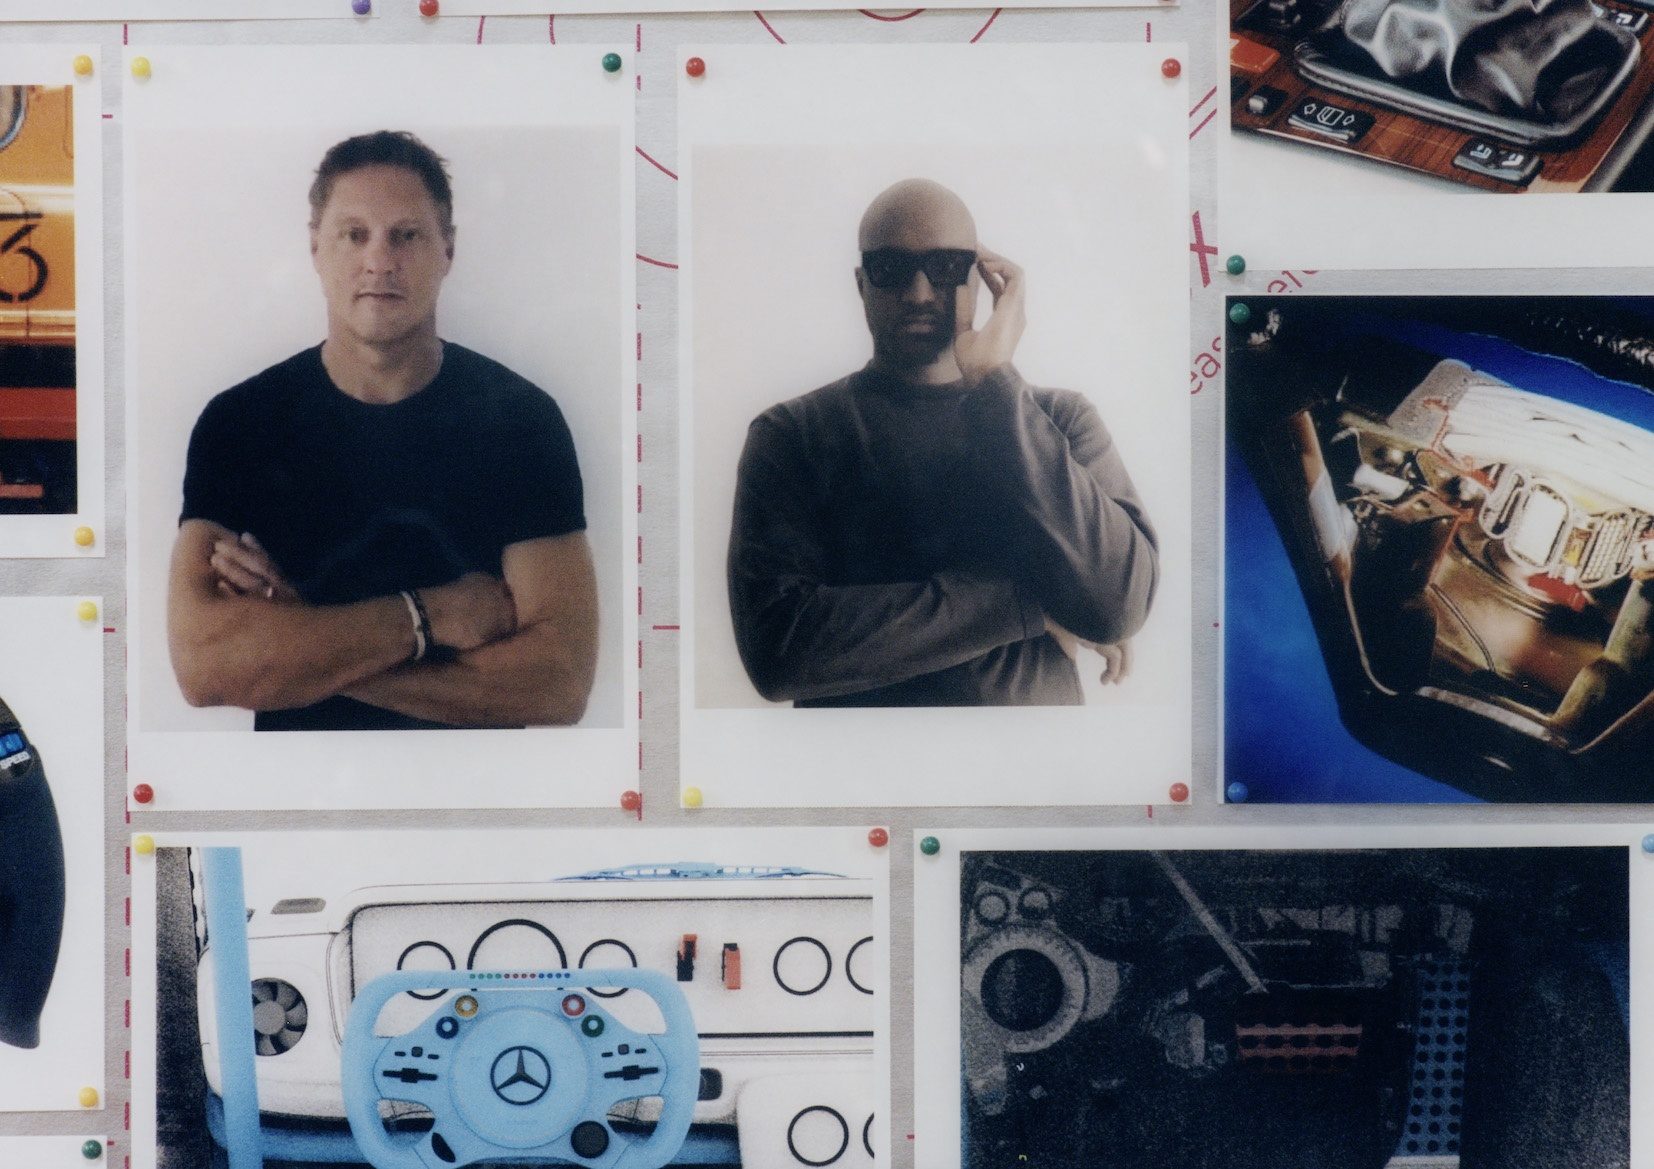 Pioneering luxury with Mercedes-Benz and Virgil Abloh